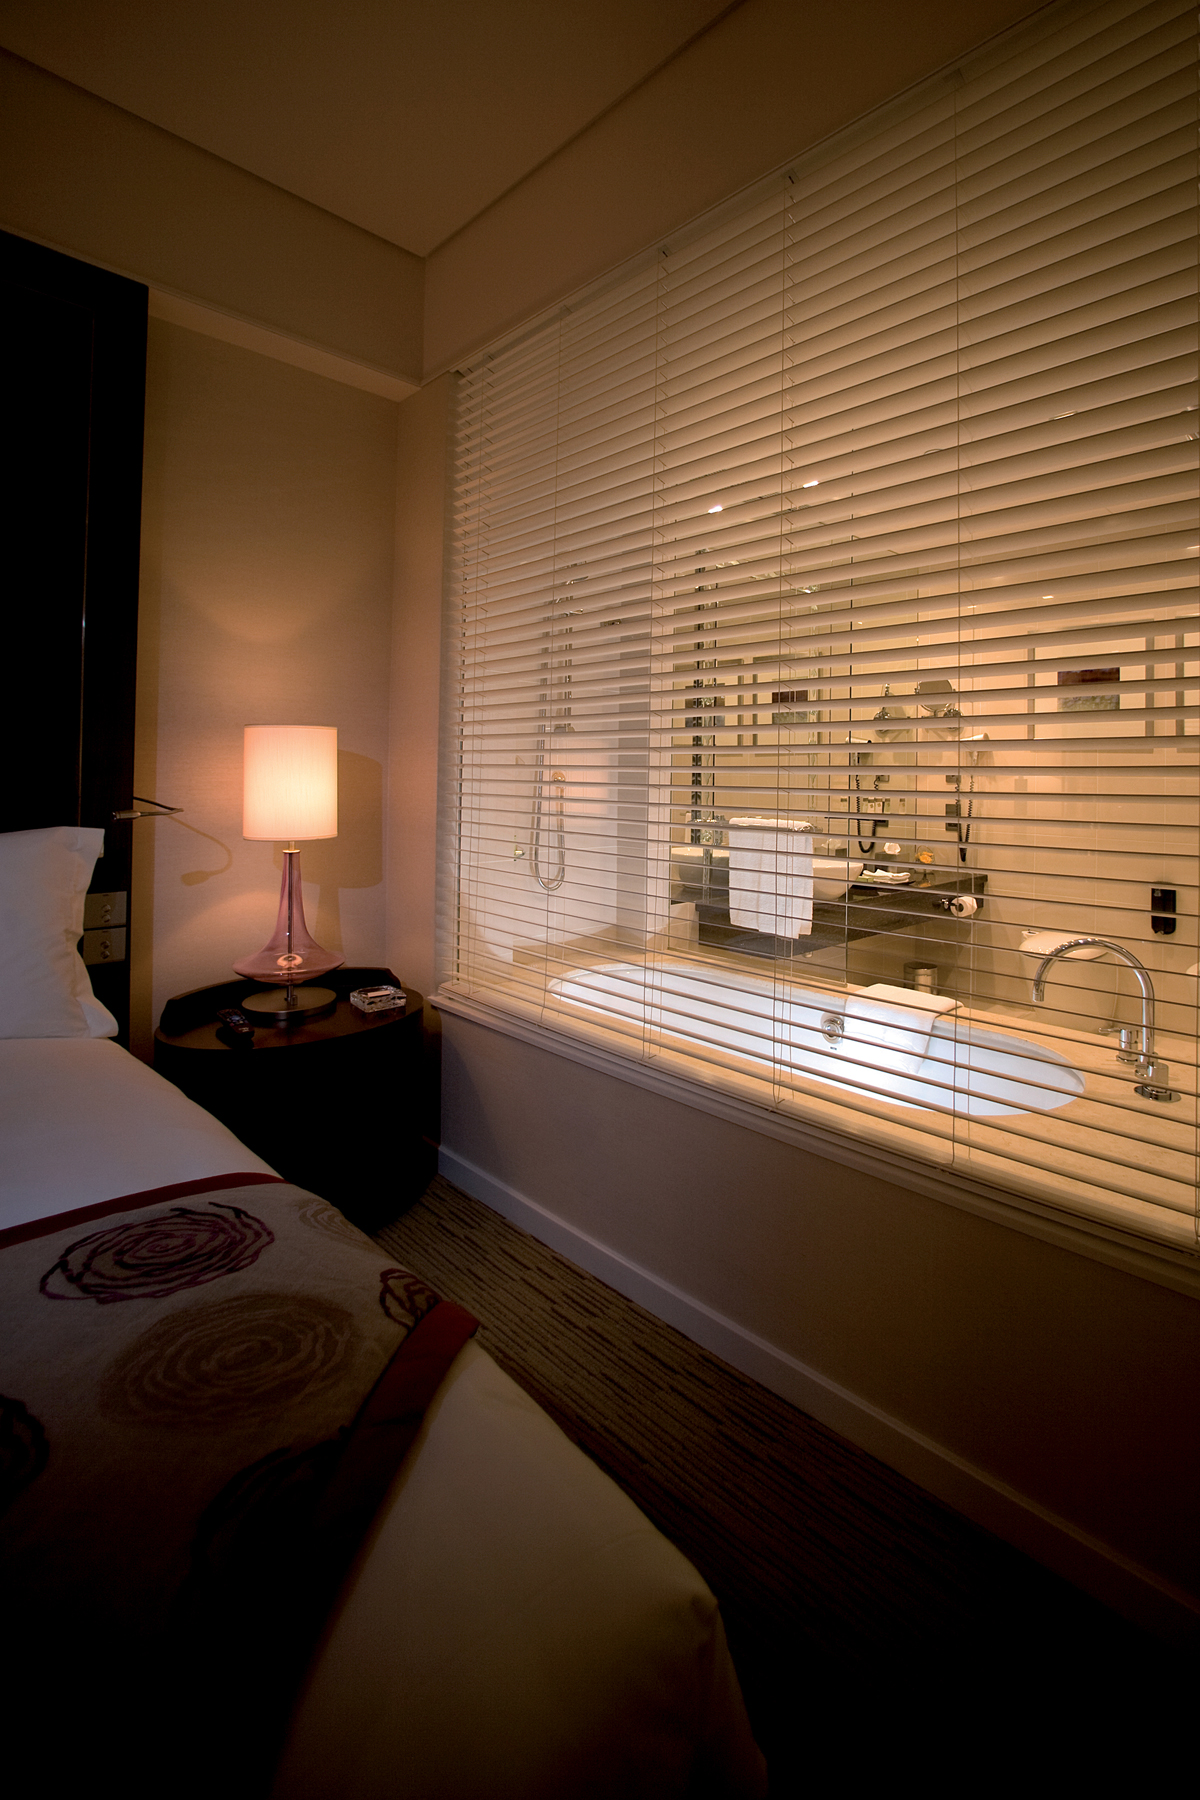 HD ARCHITECTURAL CONTRACT BLINDS